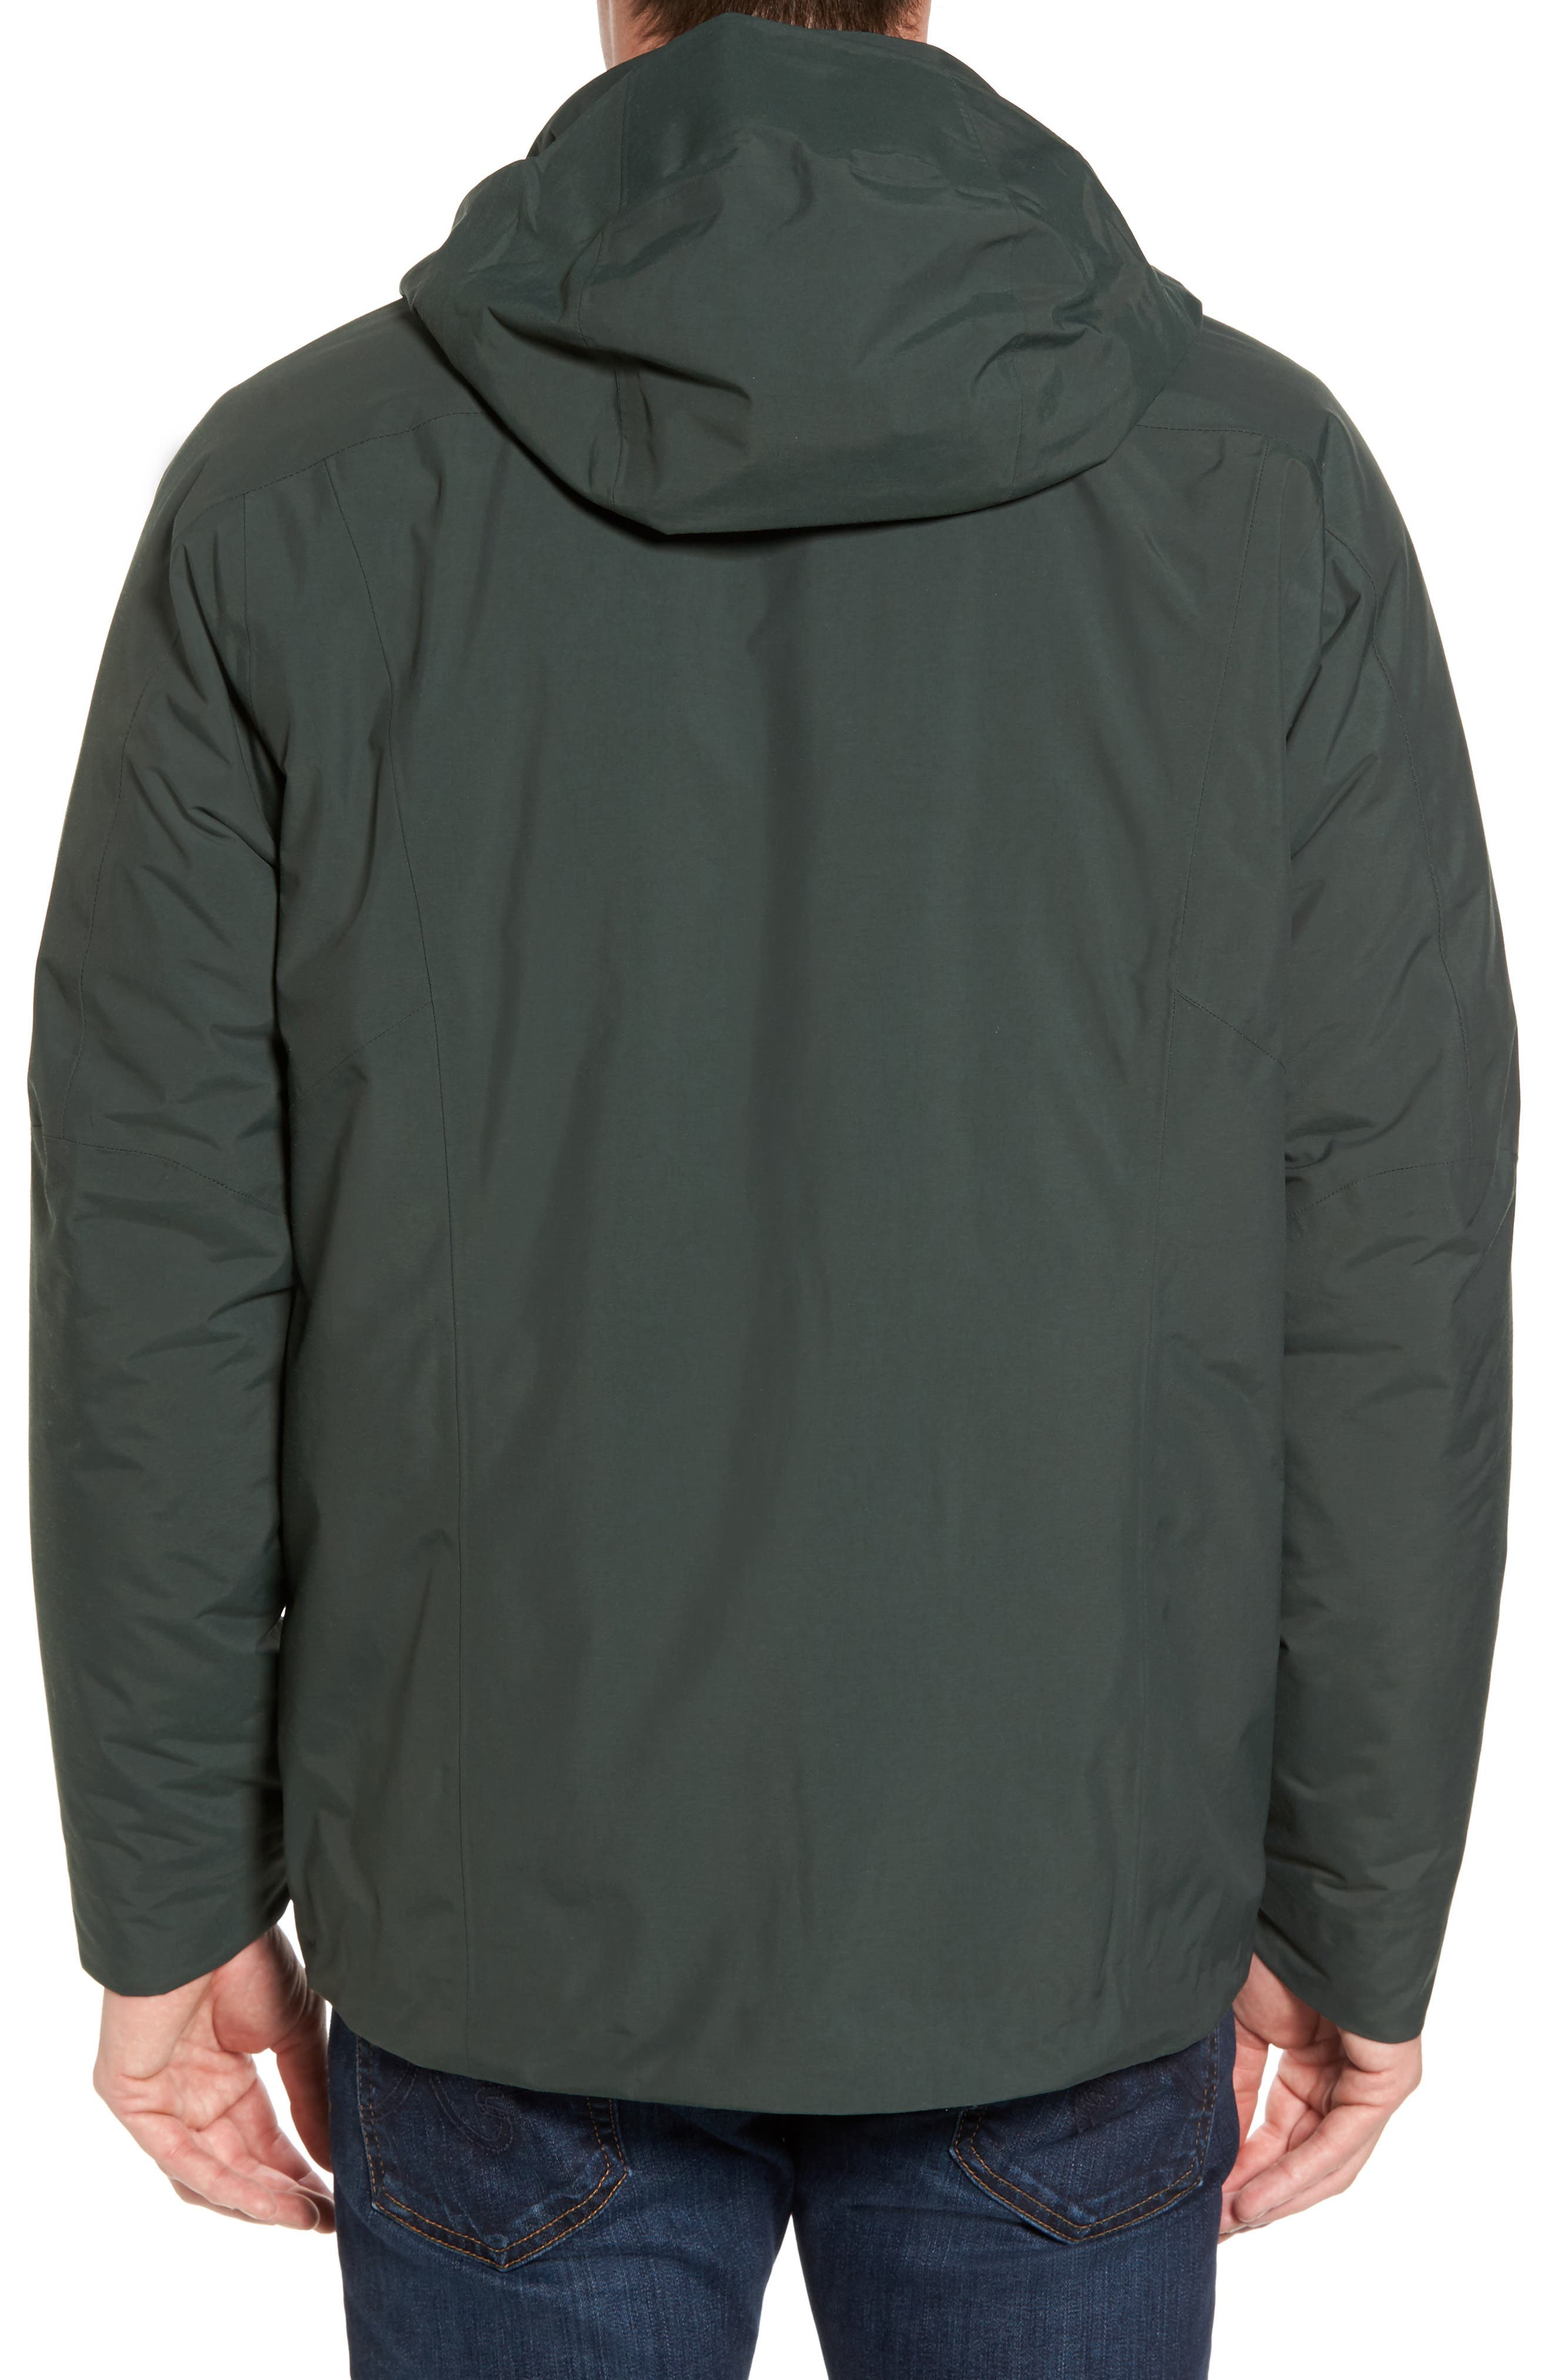 Windsweep 3-in-1 Jacket,                             Alternate thumbnail 2, color,                             002